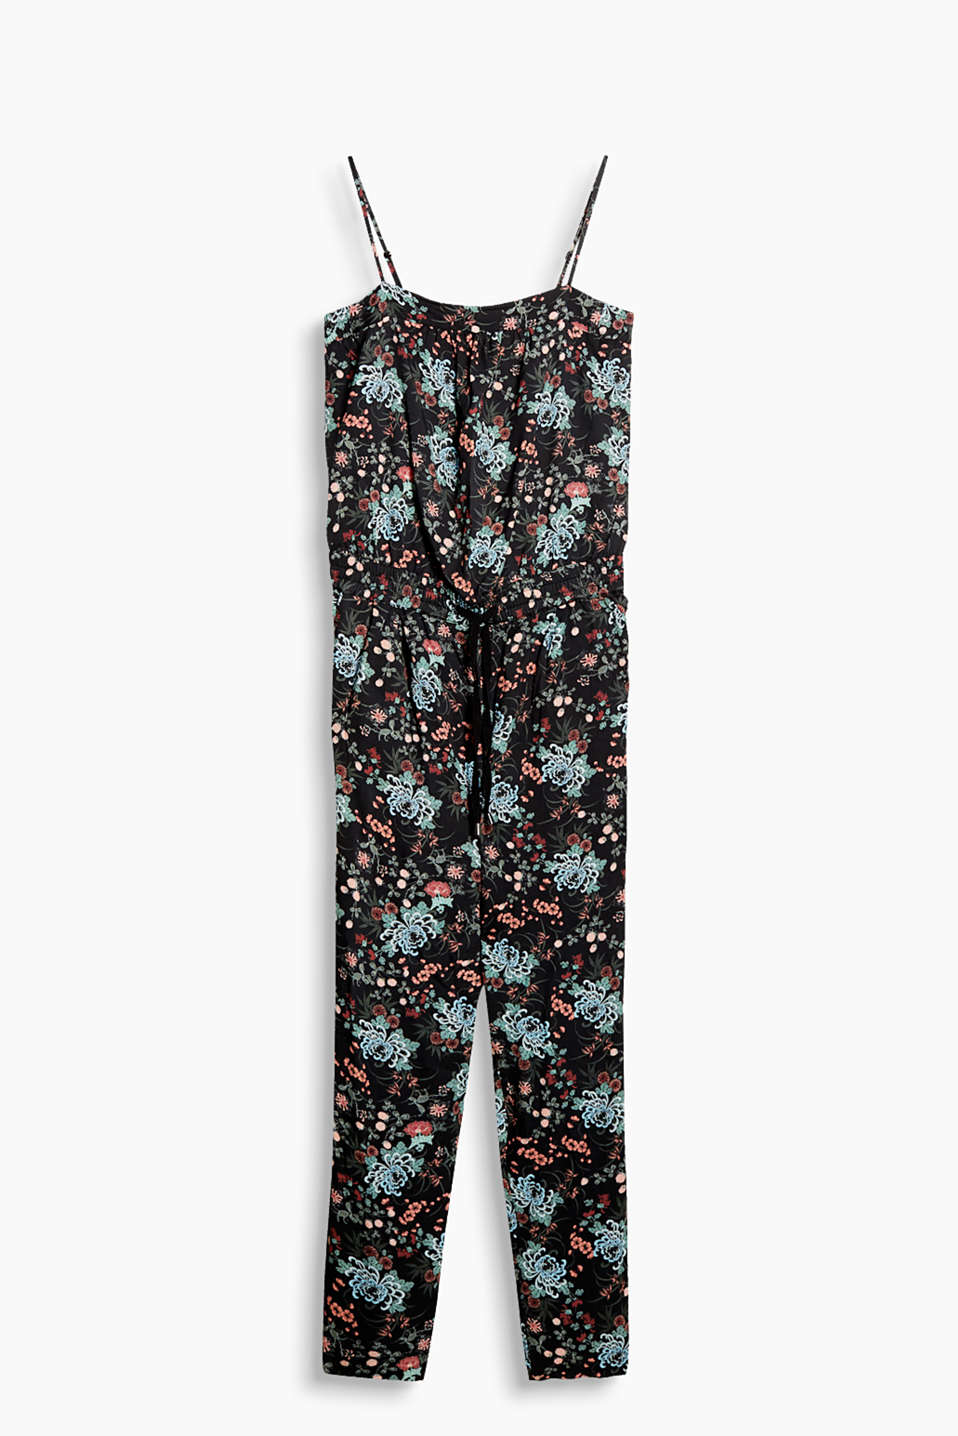 Jumpsuit in flowing fabric with a floral pattern and adjustable spaghetti straps